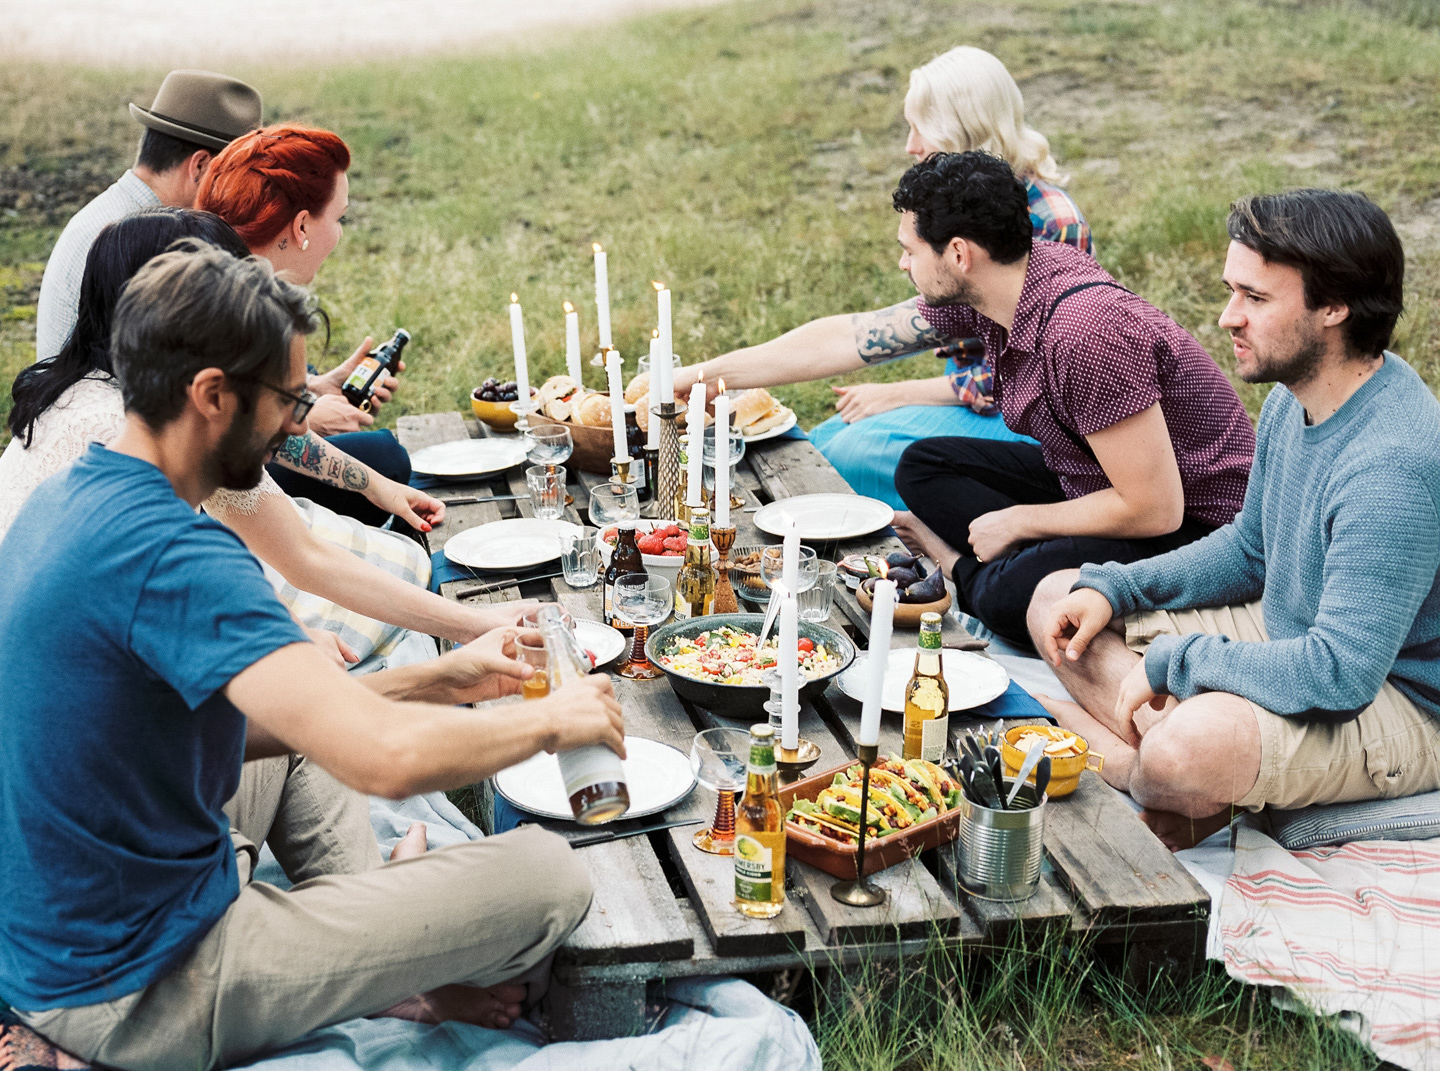 forest-picnic-with-friends-inspire-styling-hanke-arkenbout-photography-19.jpg